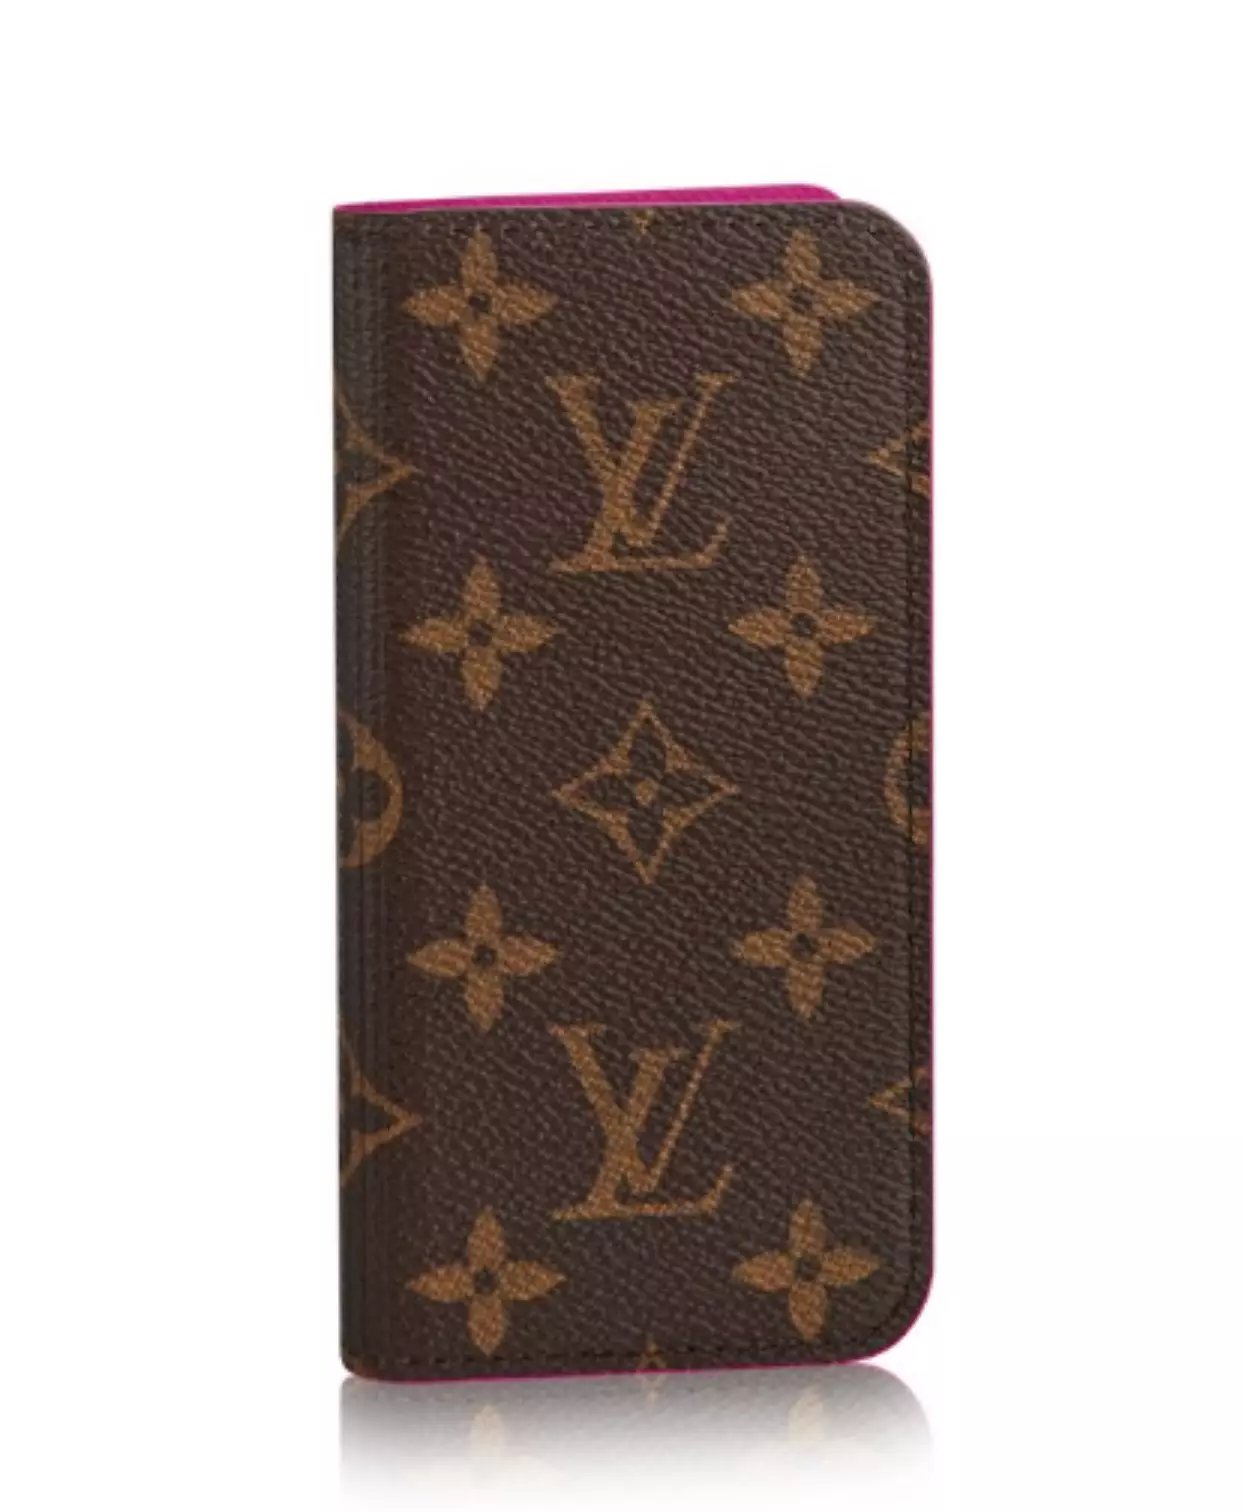 handyhülle foto iphone handyhülle iphone selbst gestalten Louis Vuitton iphone7 Plus hülle neues vom iphone apple iphone 7 Plus hülle iphone 7 Plus s oder 6 rote iphone 7 Plus hülle foto cover handy schale bedrucken